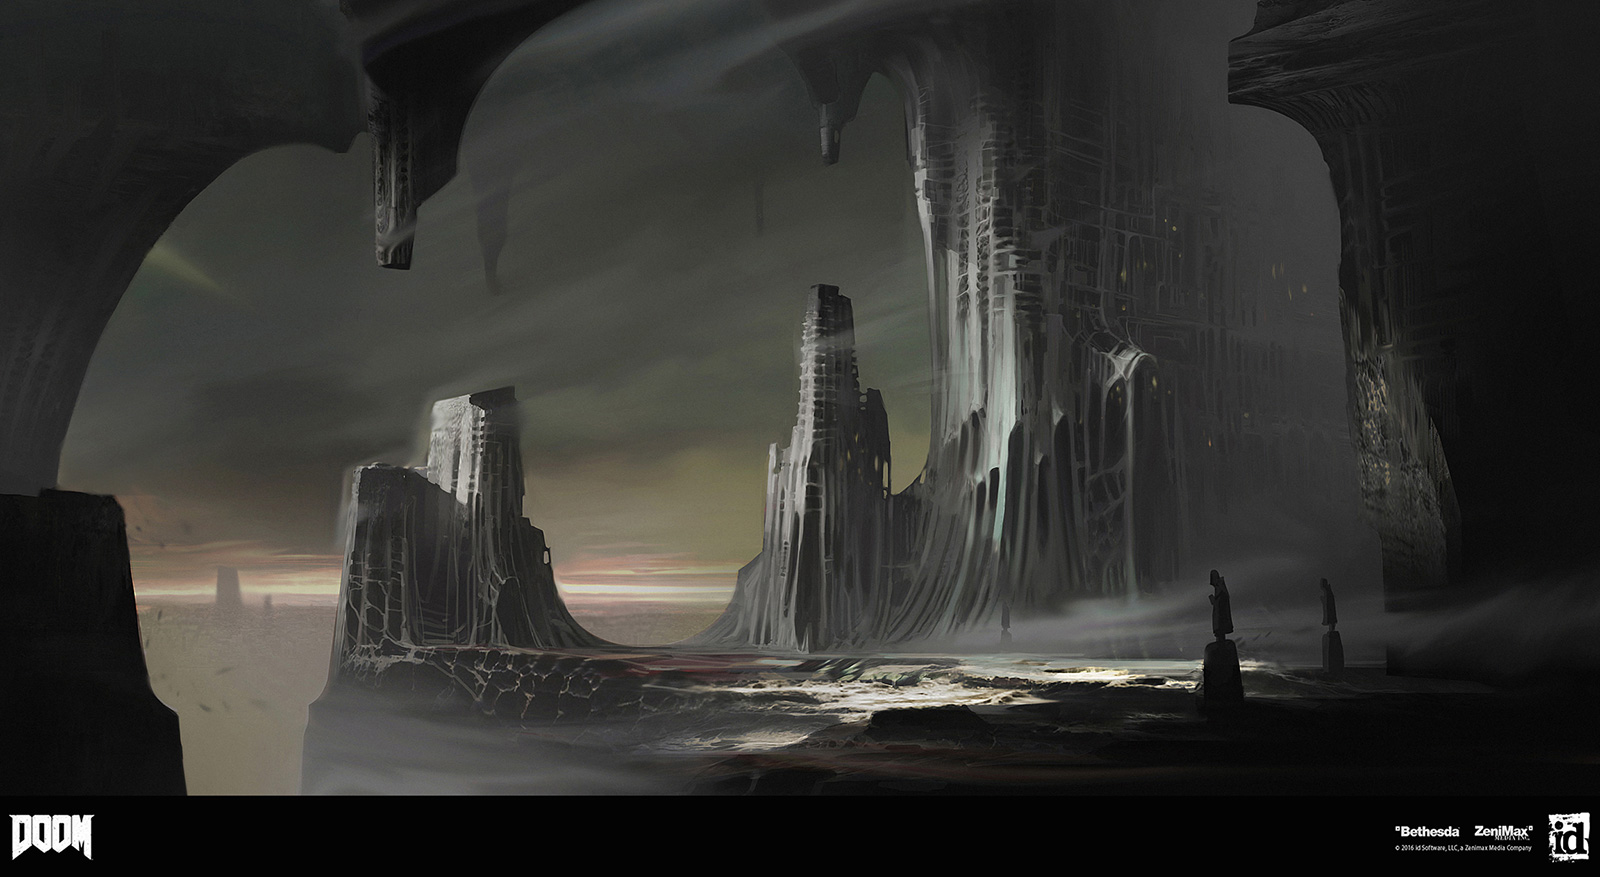 DOOM Concept Art by Jon Lane